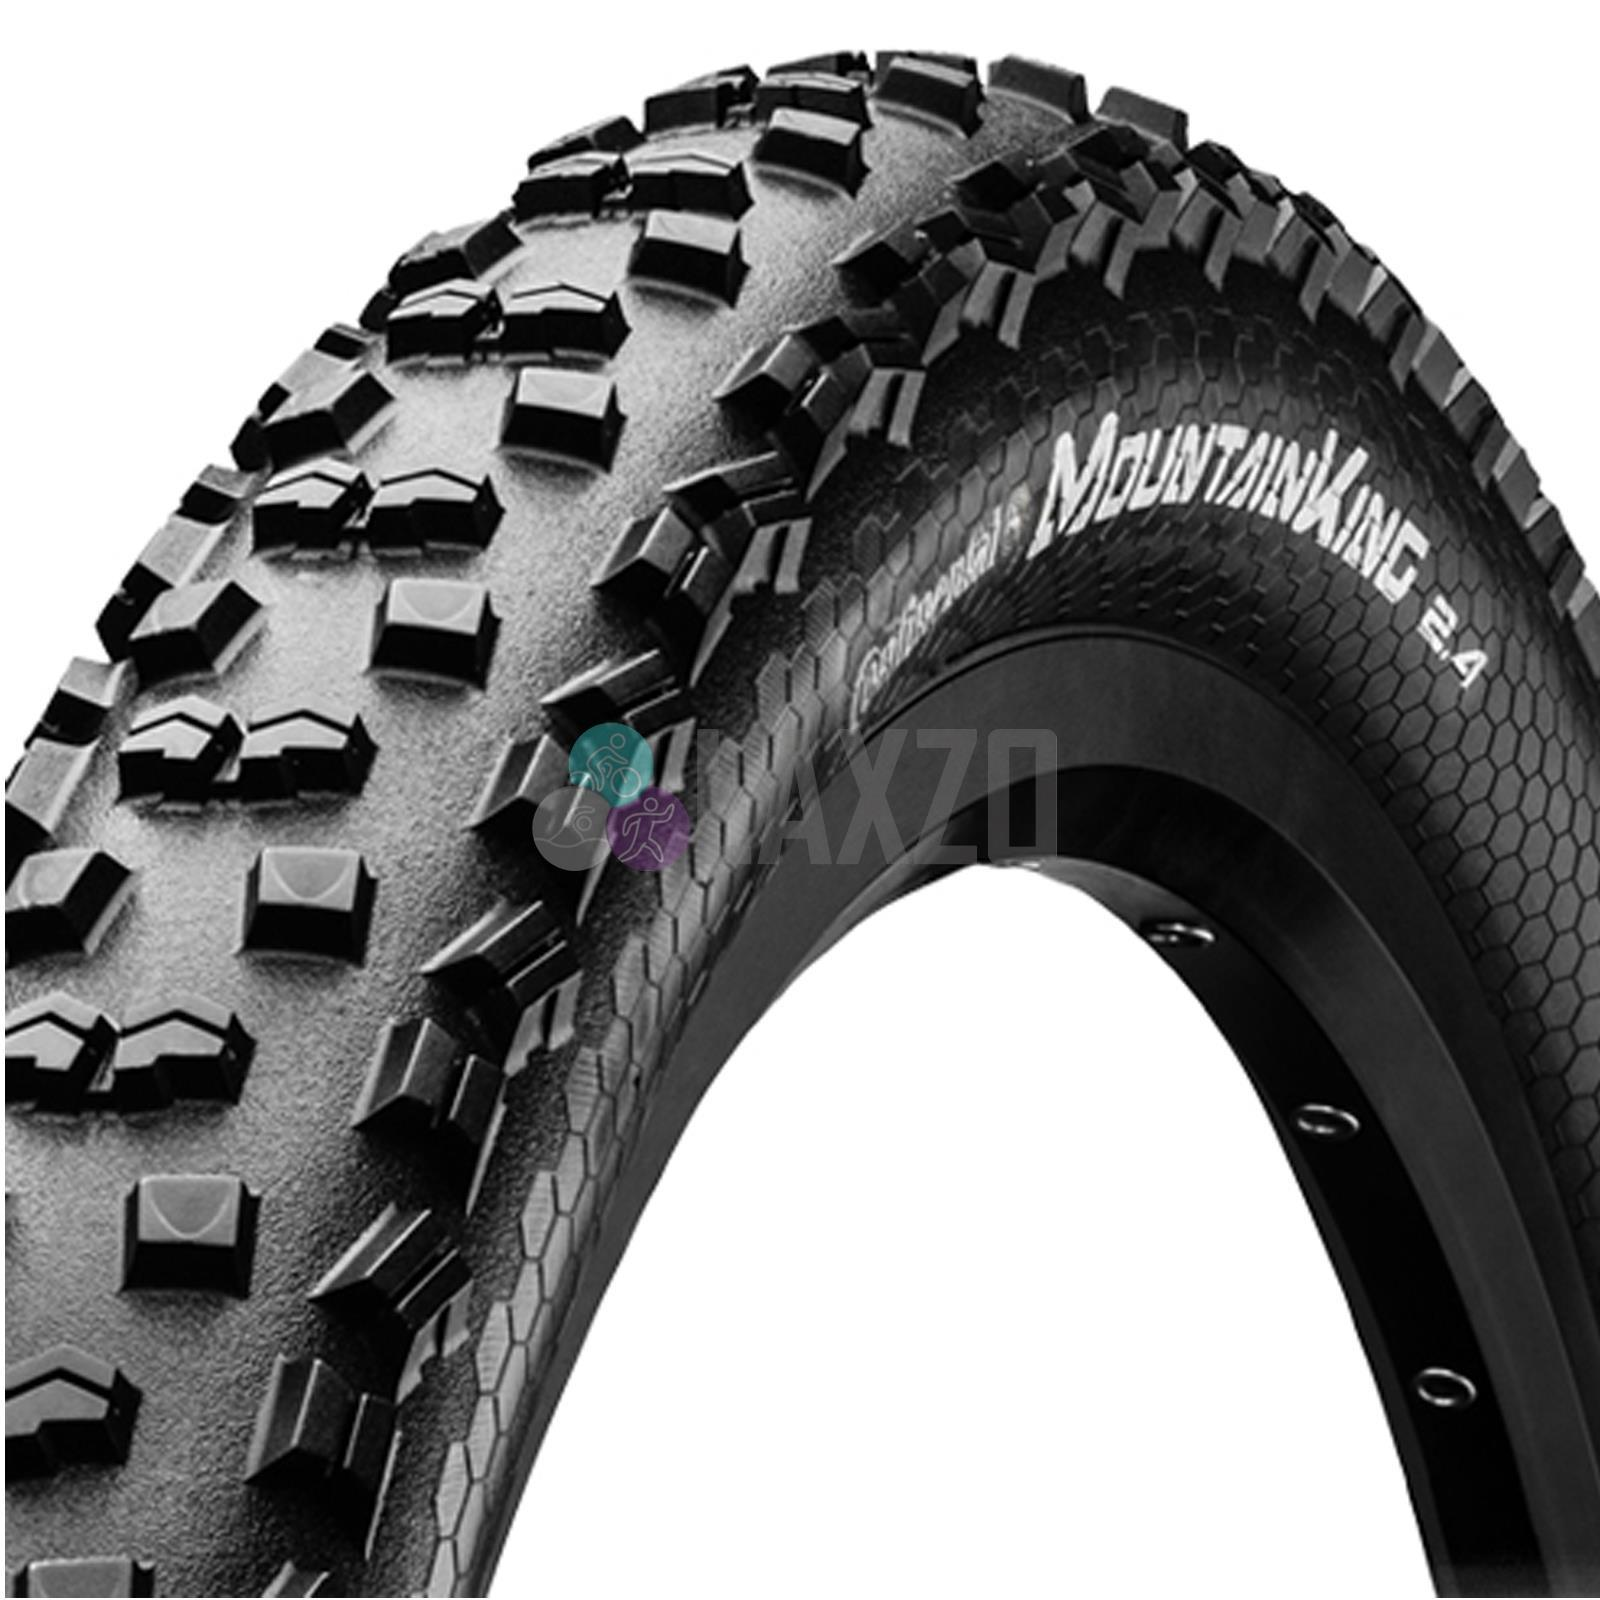 26 x 2.4 Continental Mountain King II XC MTB Tyre Rigid